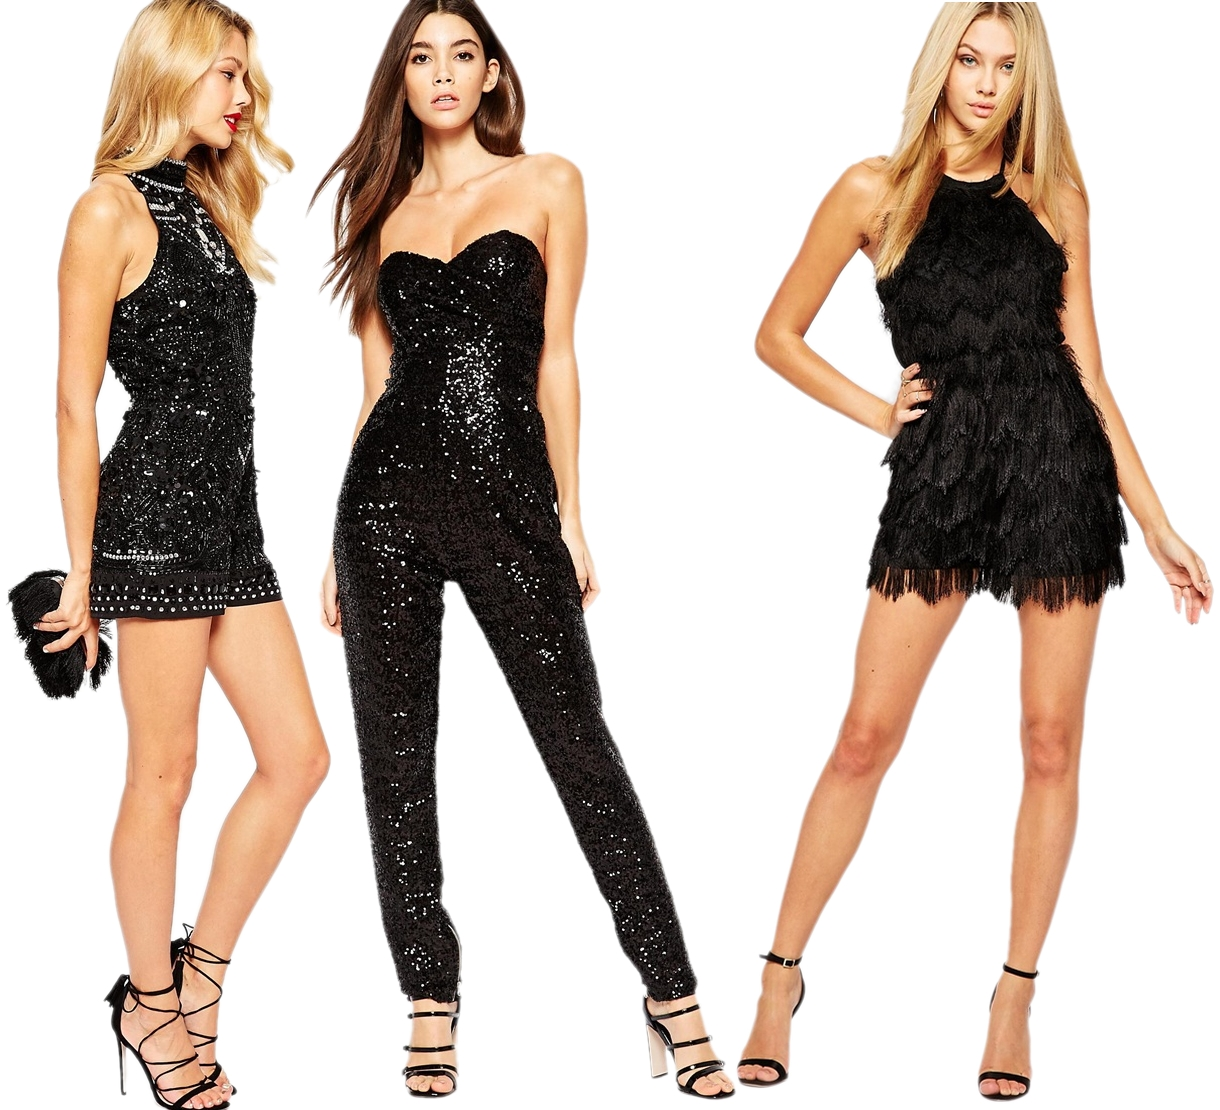 10 Ideal New Years Eve Dress Ideas new years eve outfit ideas 2015 culture with coco 2020